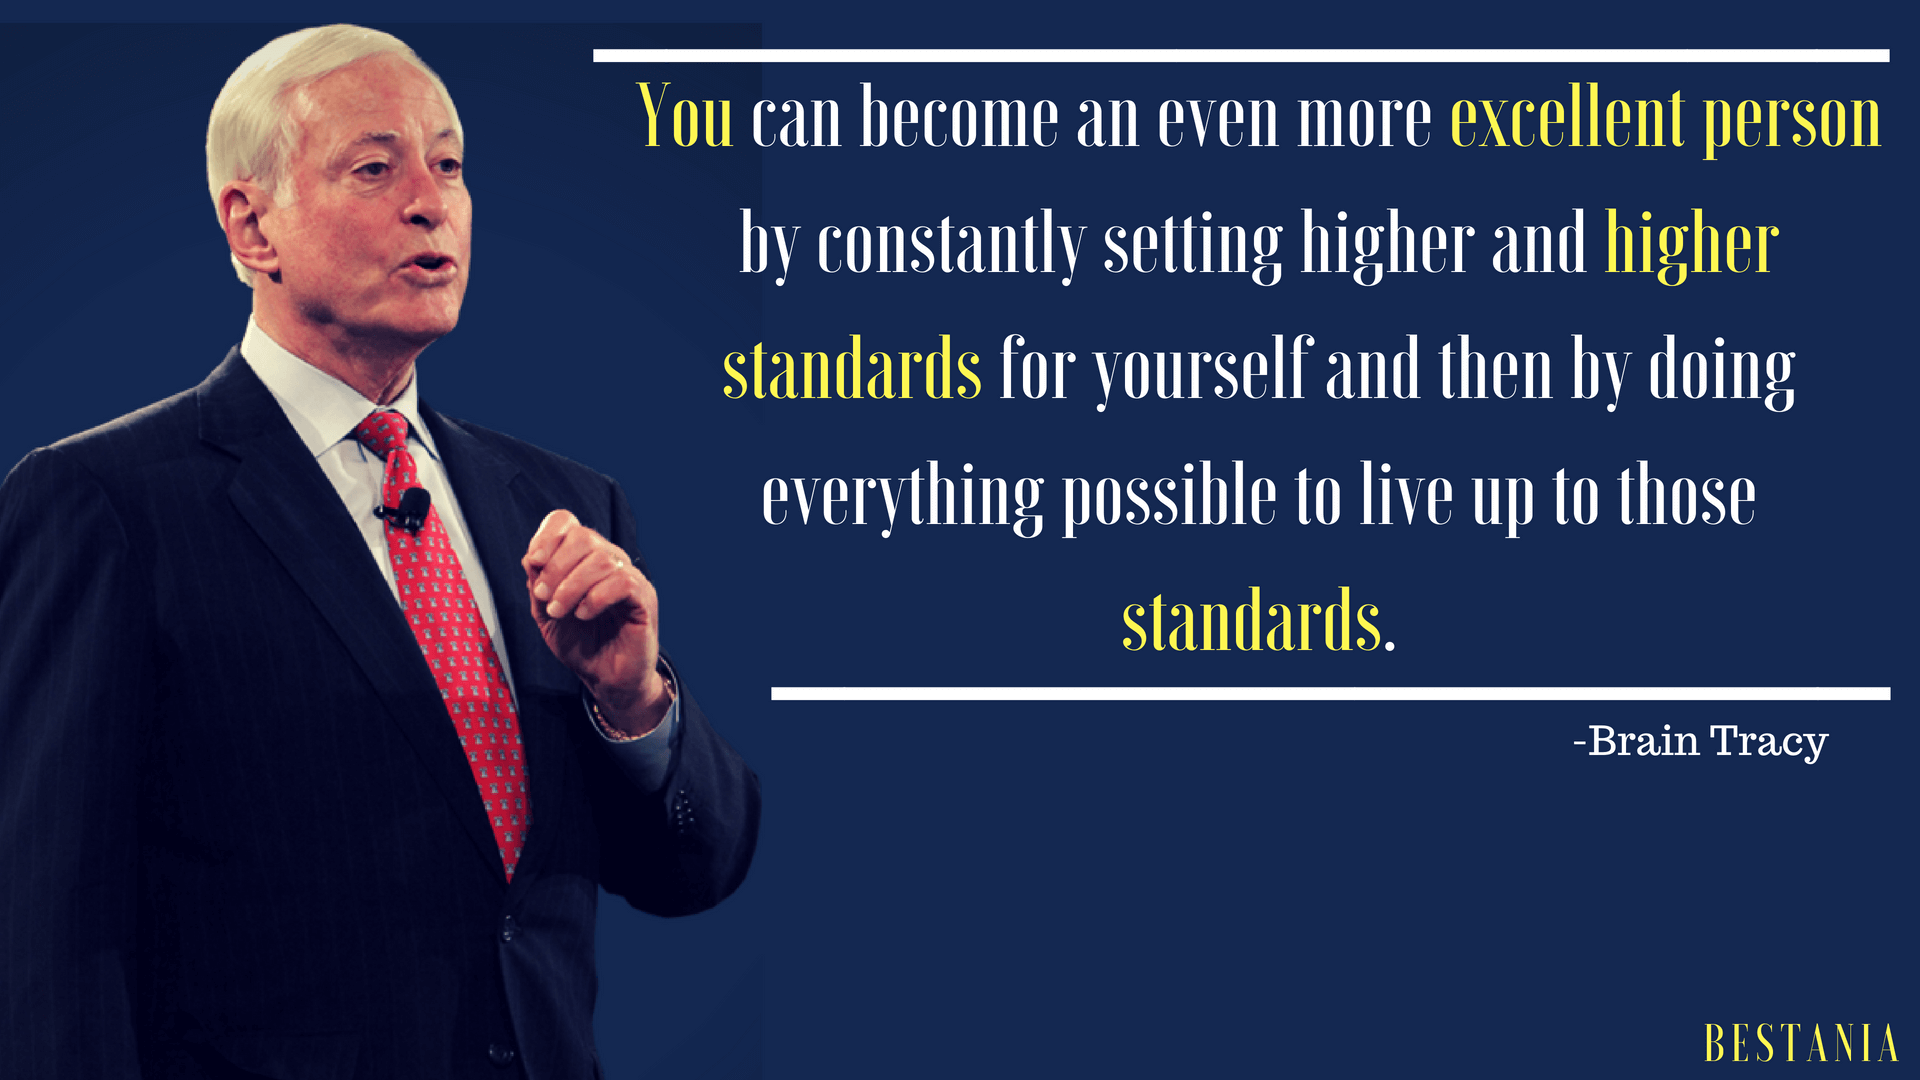 You can become an even more excellent person by constantly setting higher and higher standards for yourself and then by doing everything possible to live up to those standards.